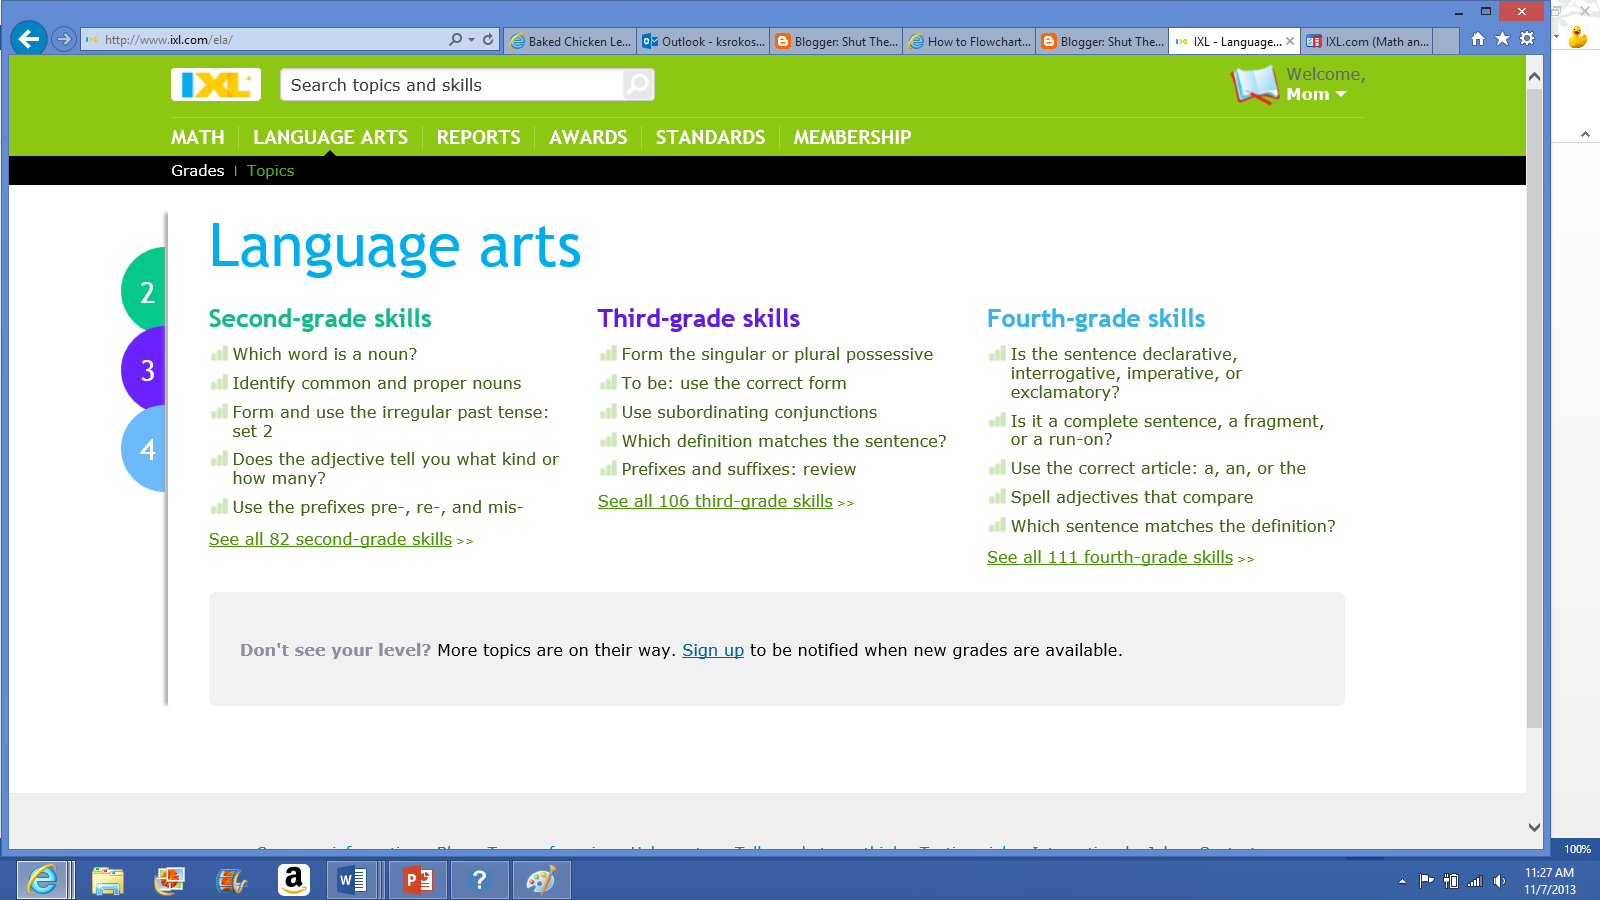 Shut The Fridge: IXL Learning